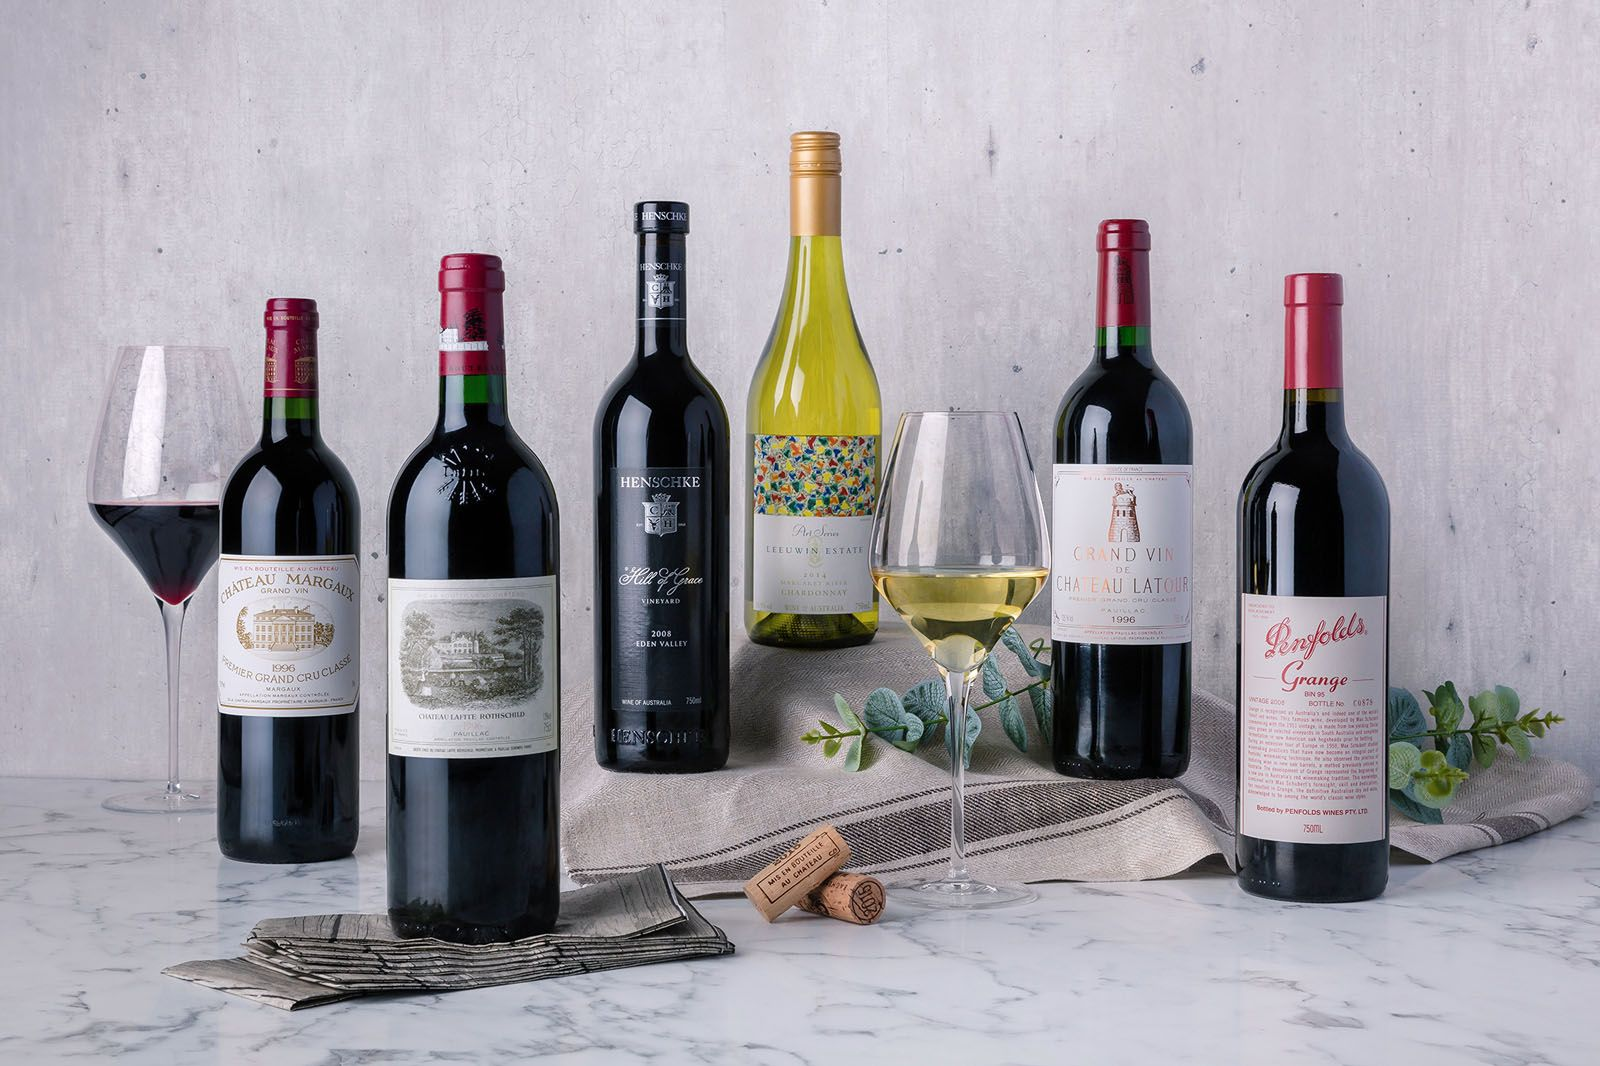 Here Are The Winners Of The Wine Pinnacle Awards Presented By Genting Singapore 2019